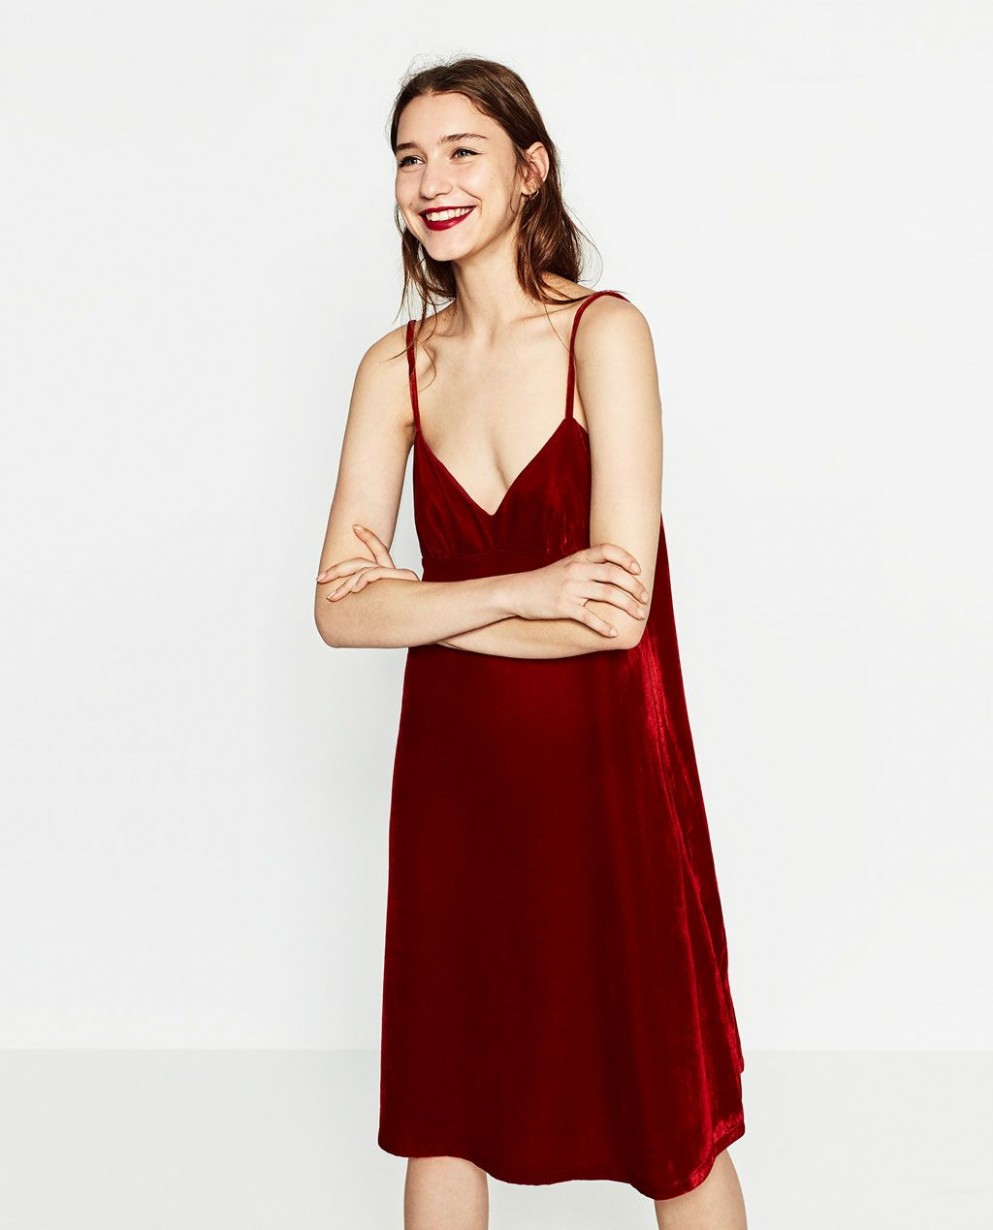 zara woman velvet dress modestil, rotes samtkleid, vintage rotes samtkleid